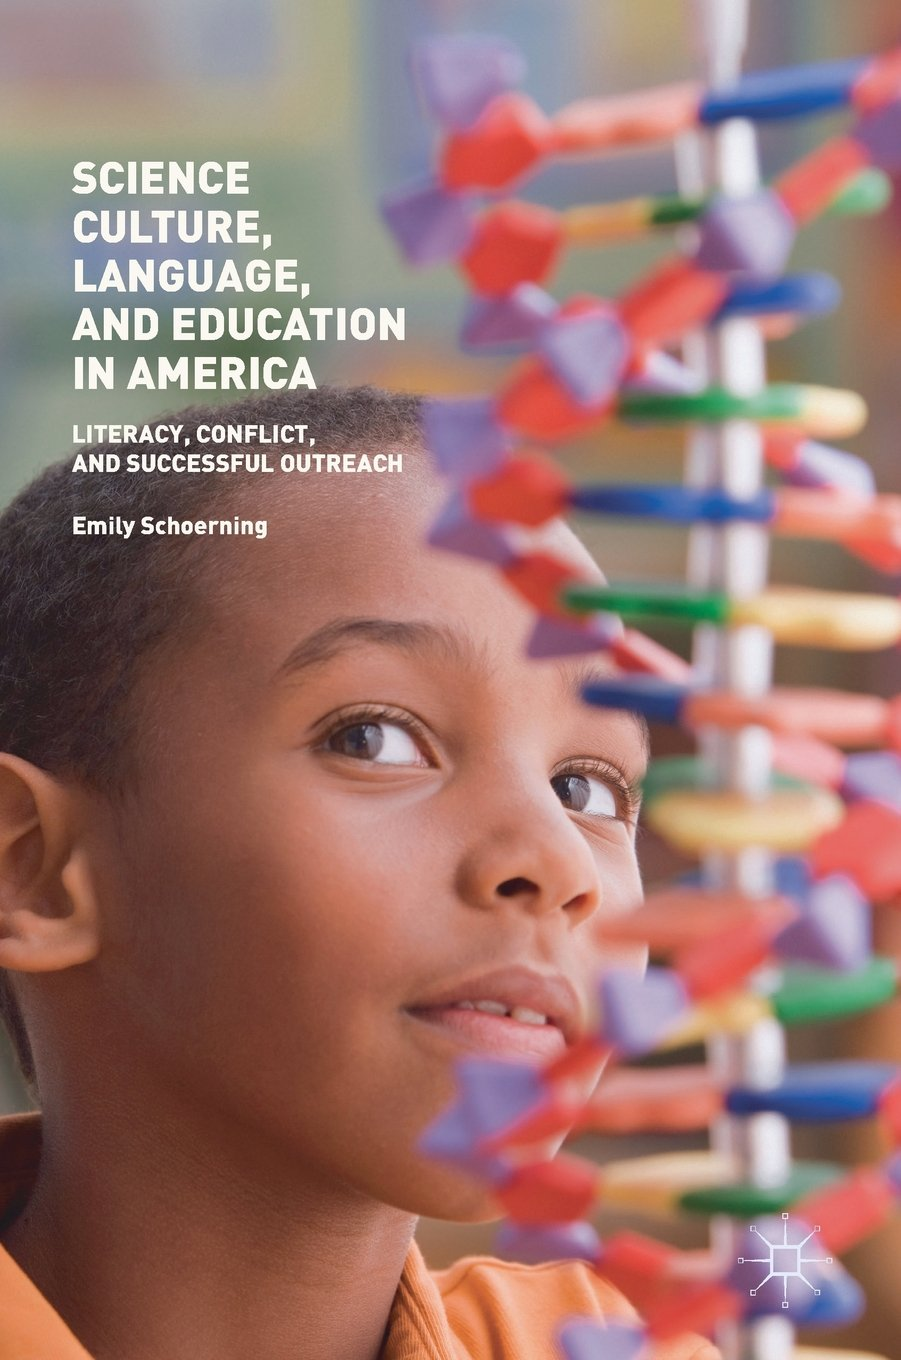 Science Culture, Language, and Education in America: Literacy, Conflict, and Successful Outreach